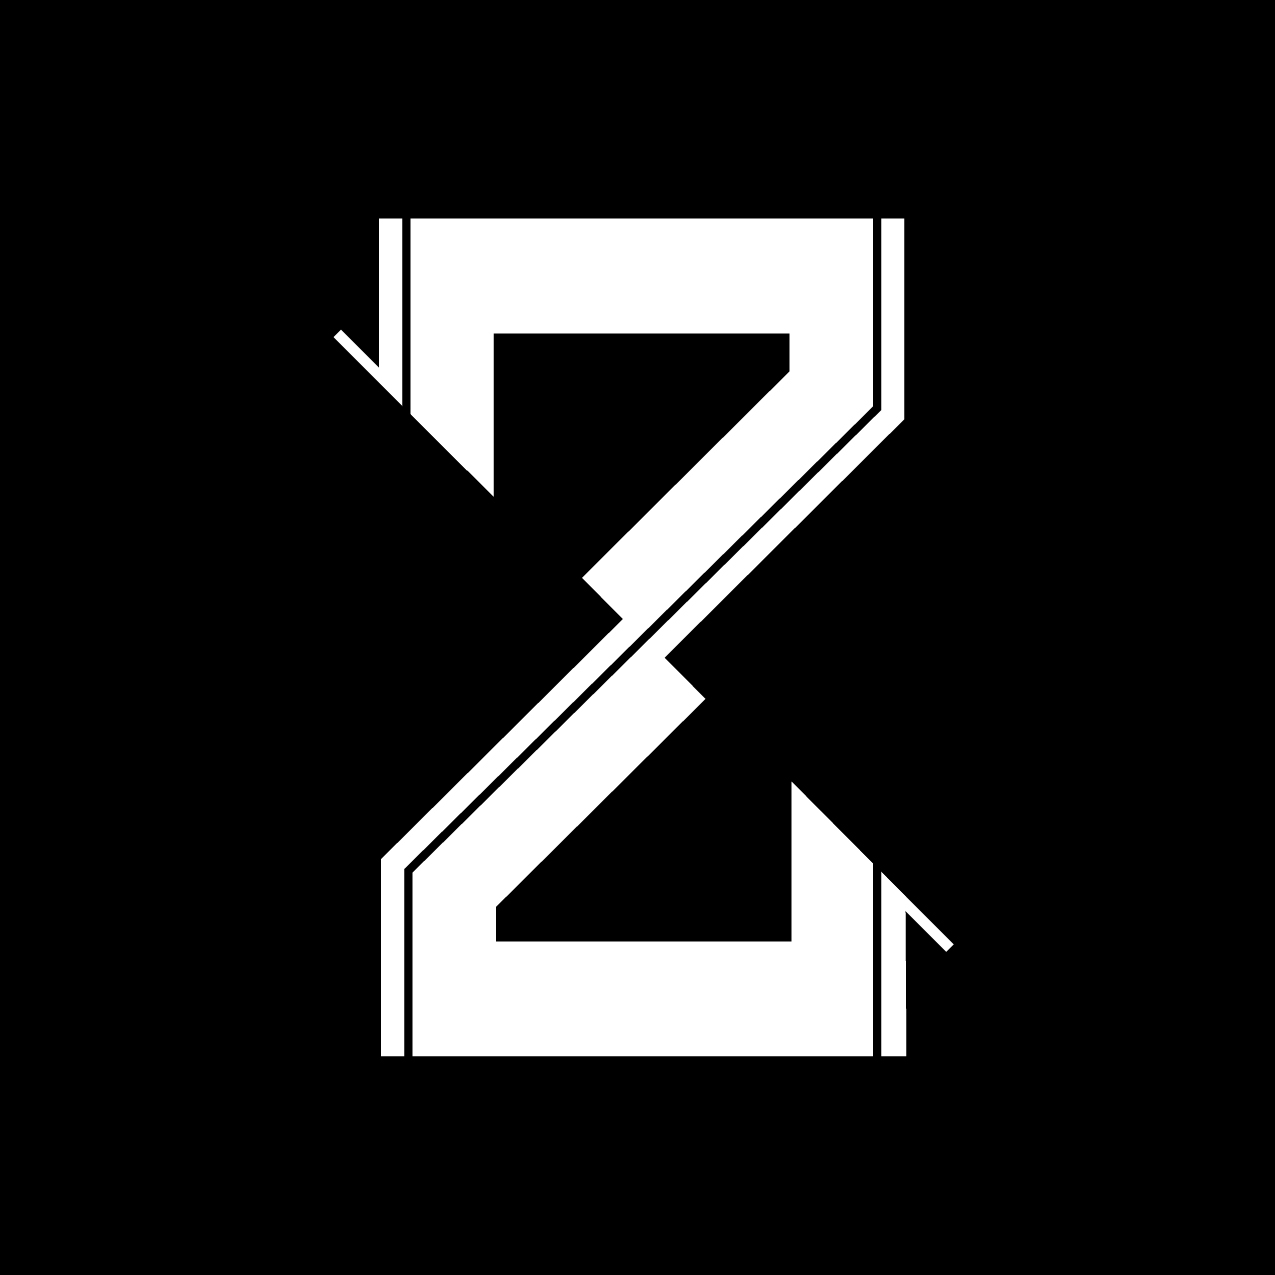 Letter Z13 Design by Furia